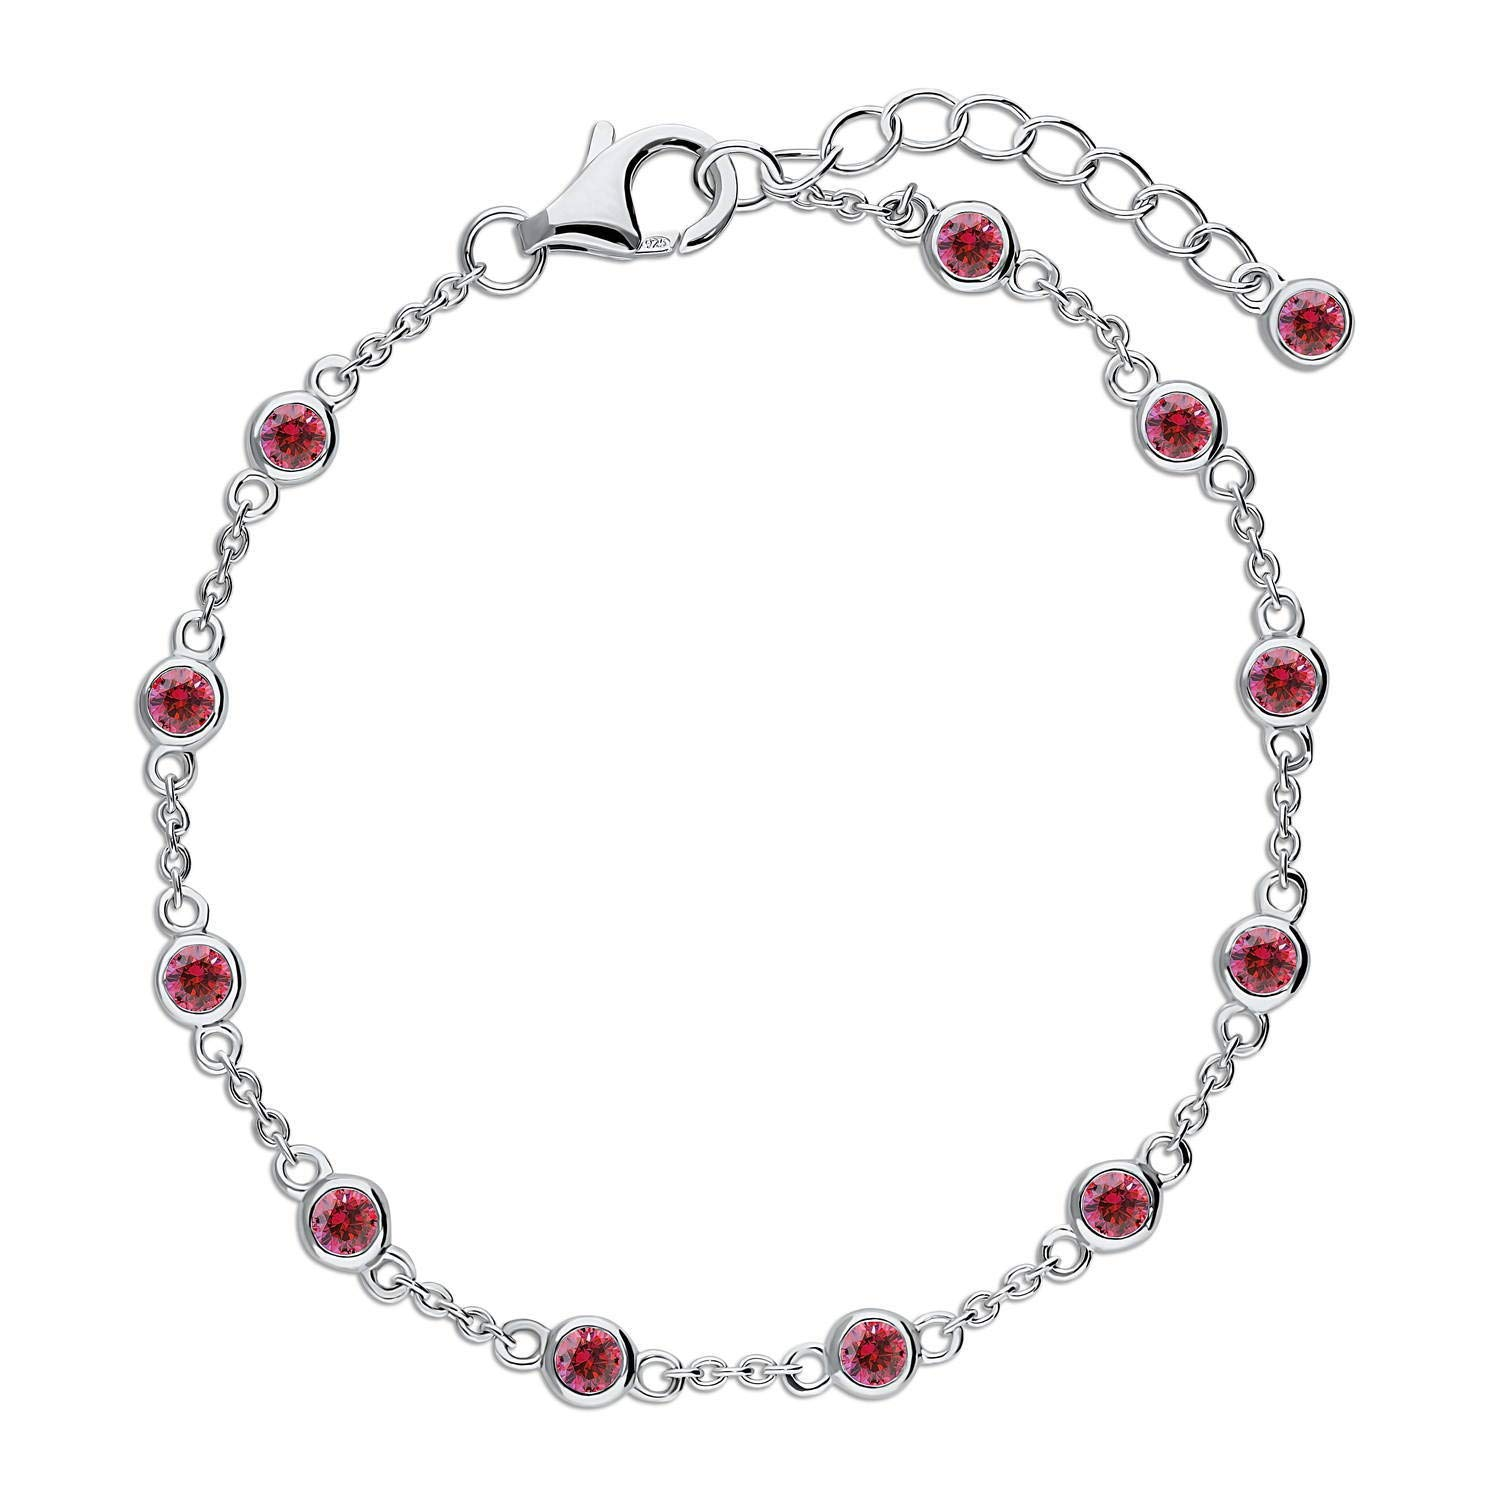 BERRICLE Rhodium Plated Sterling Silver by The Yard Wedding Station Bracelet Made with Swarovski Zirconia Red